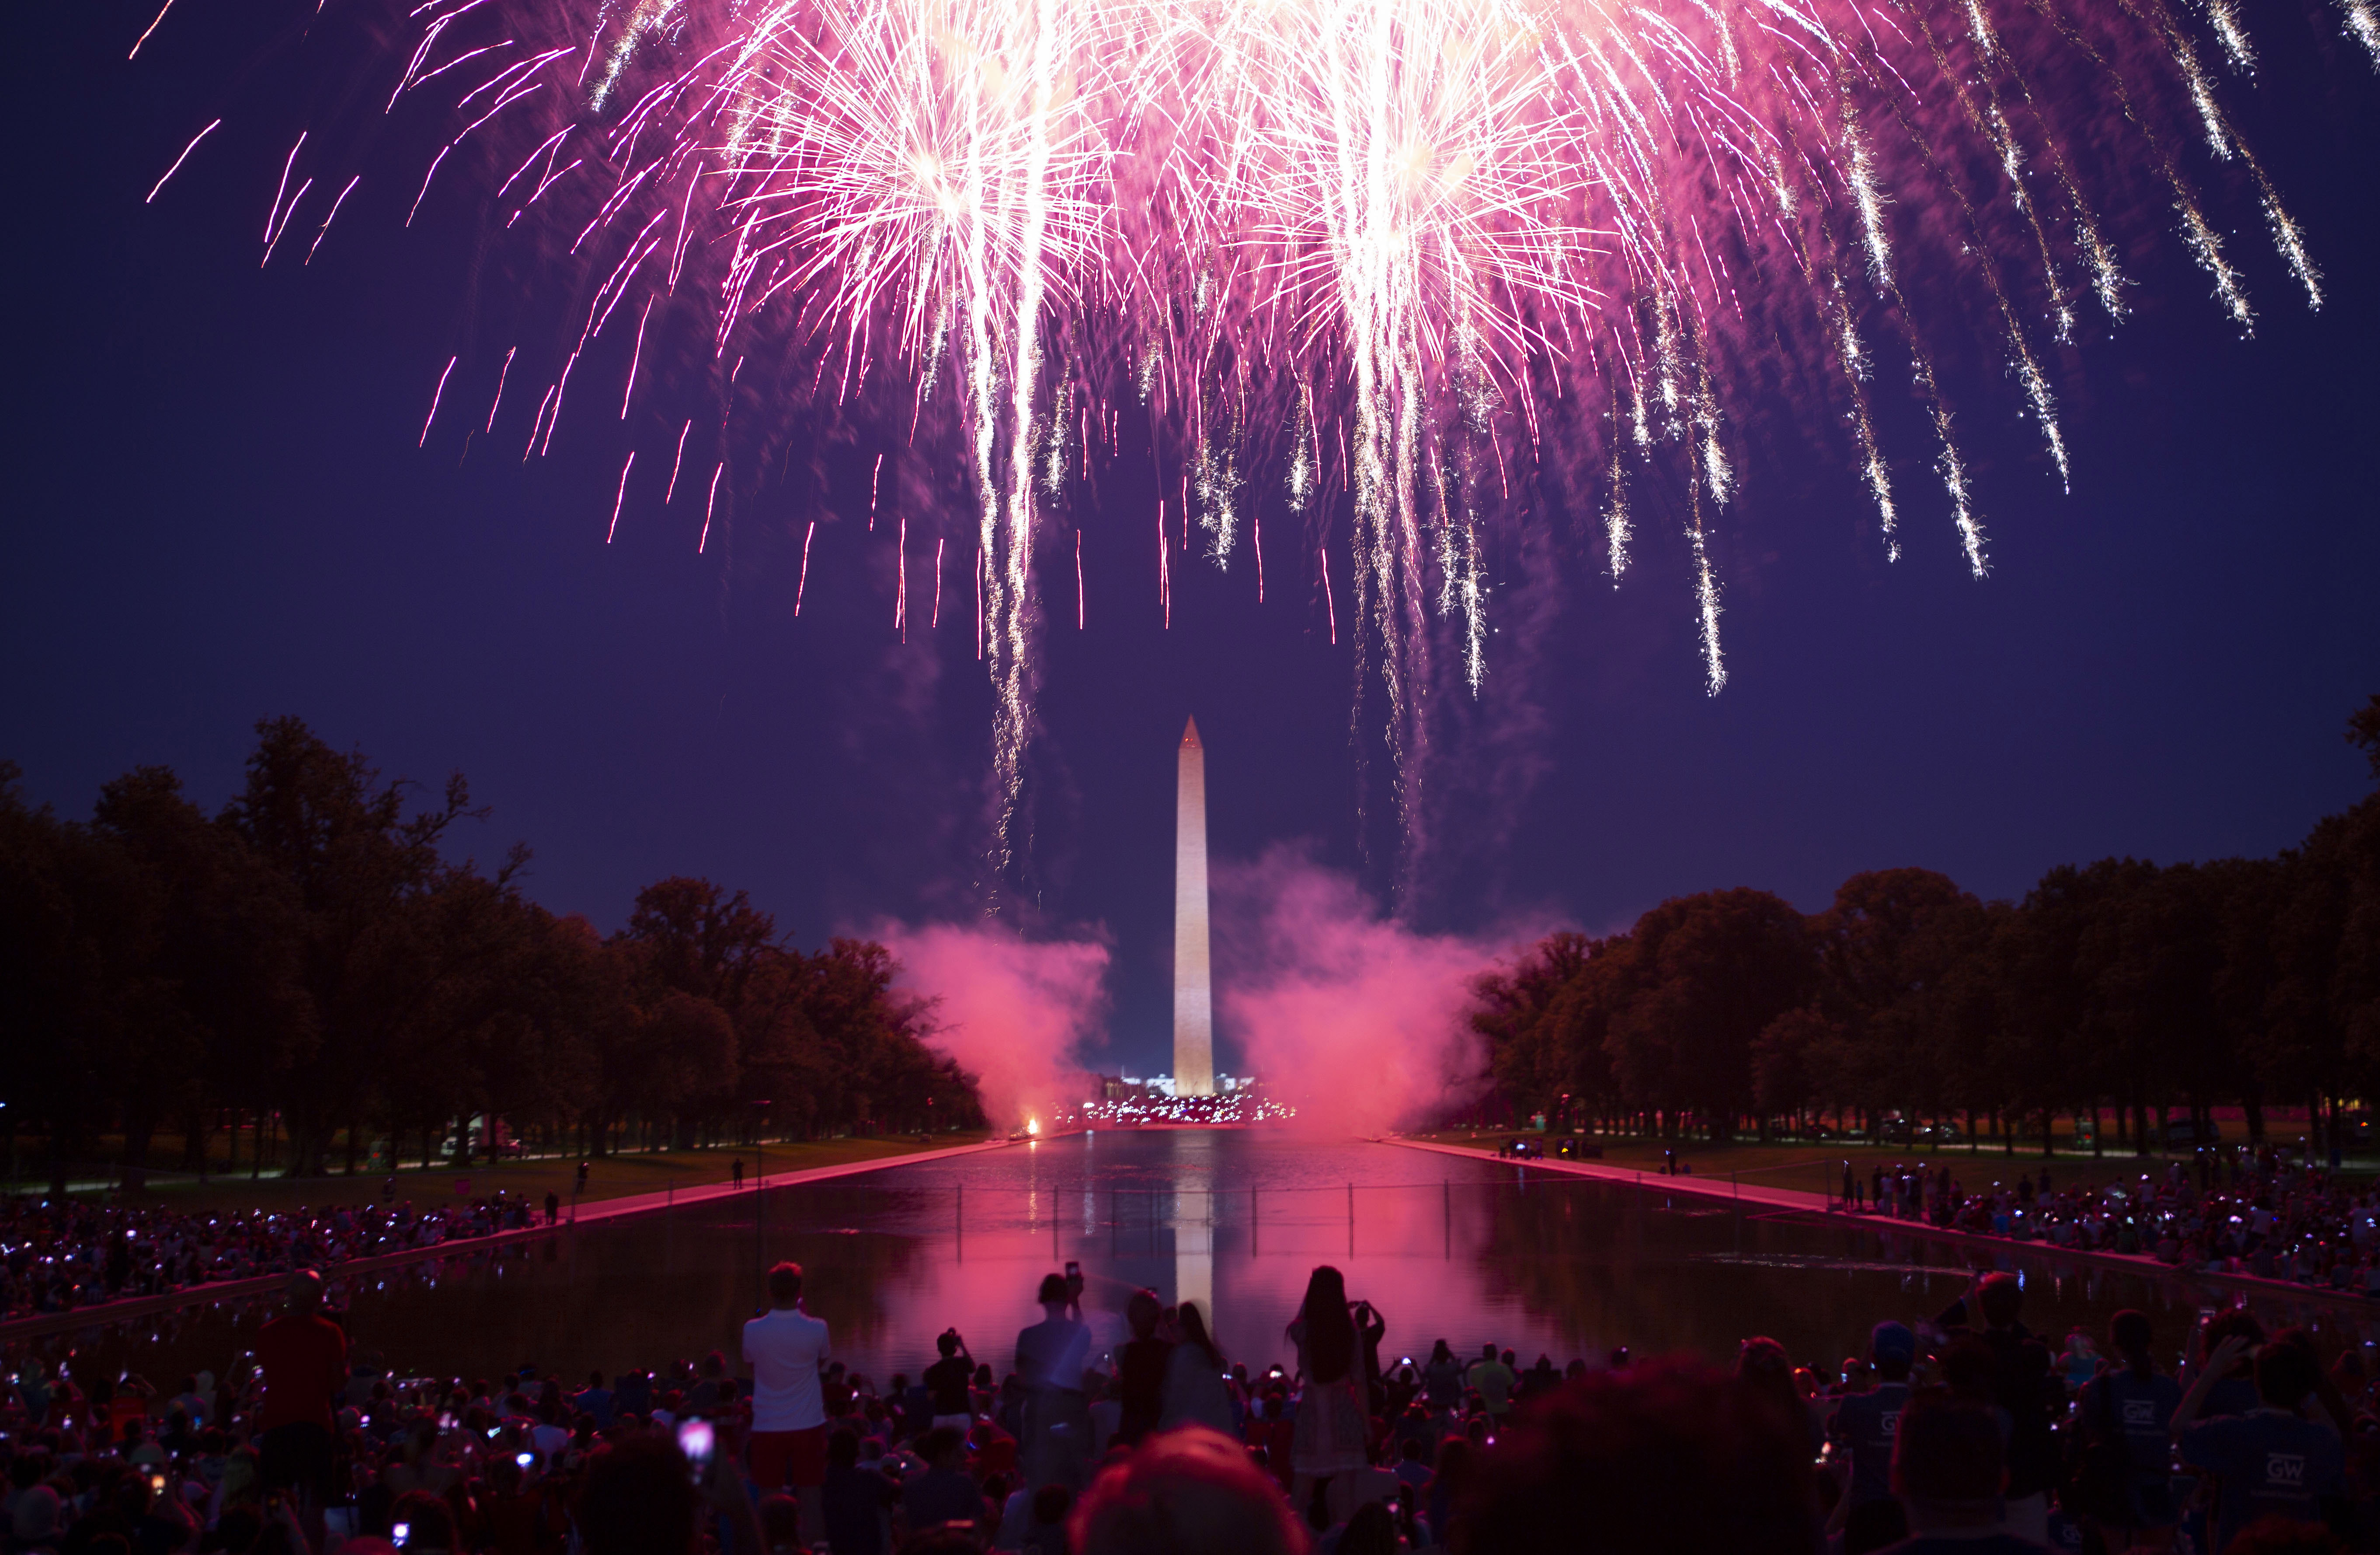 tuscaloosa 4th of july events 2020